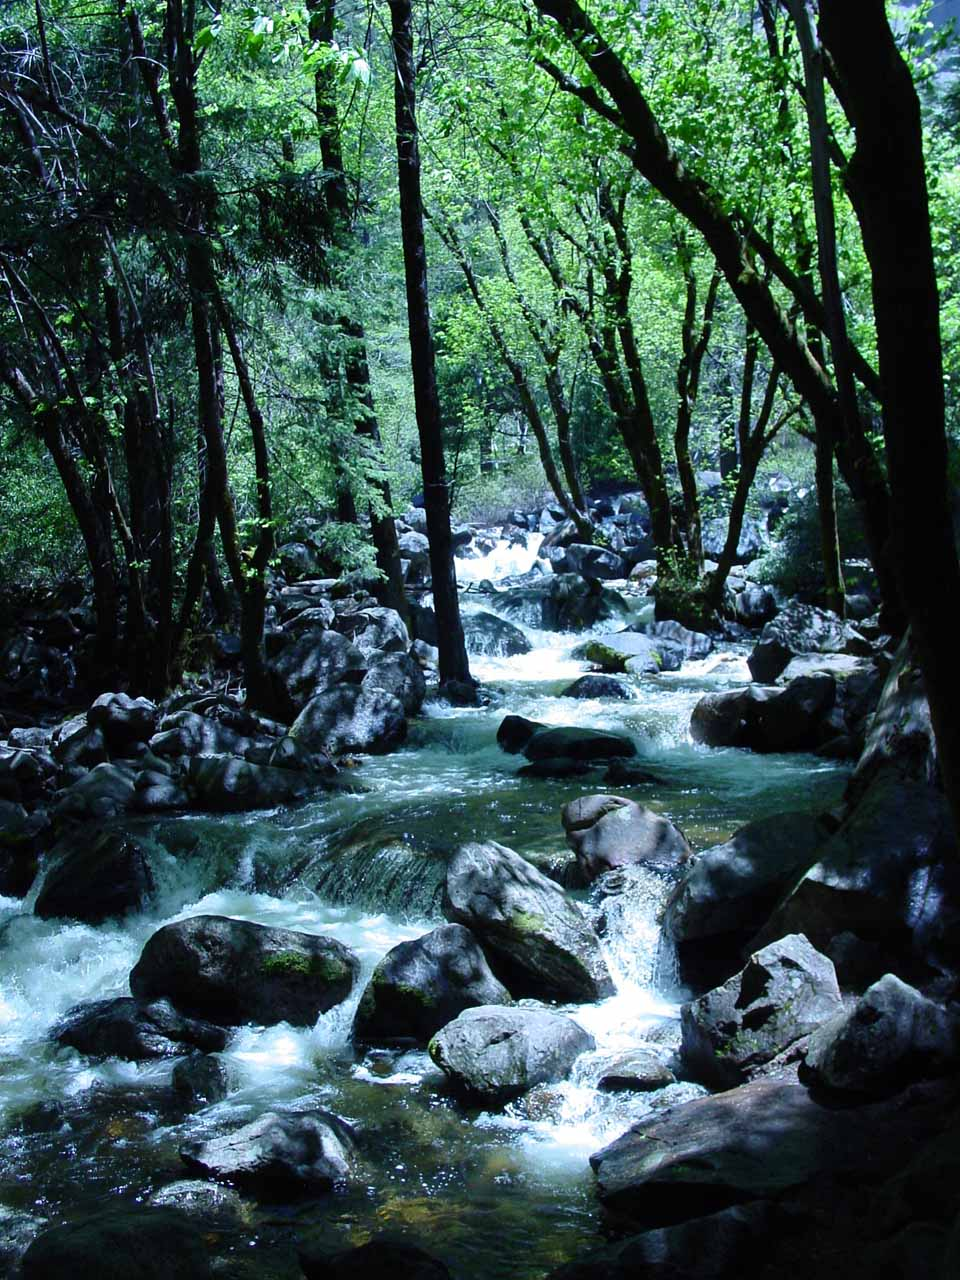 Bridalveil Creek en route to the base of the waterfall